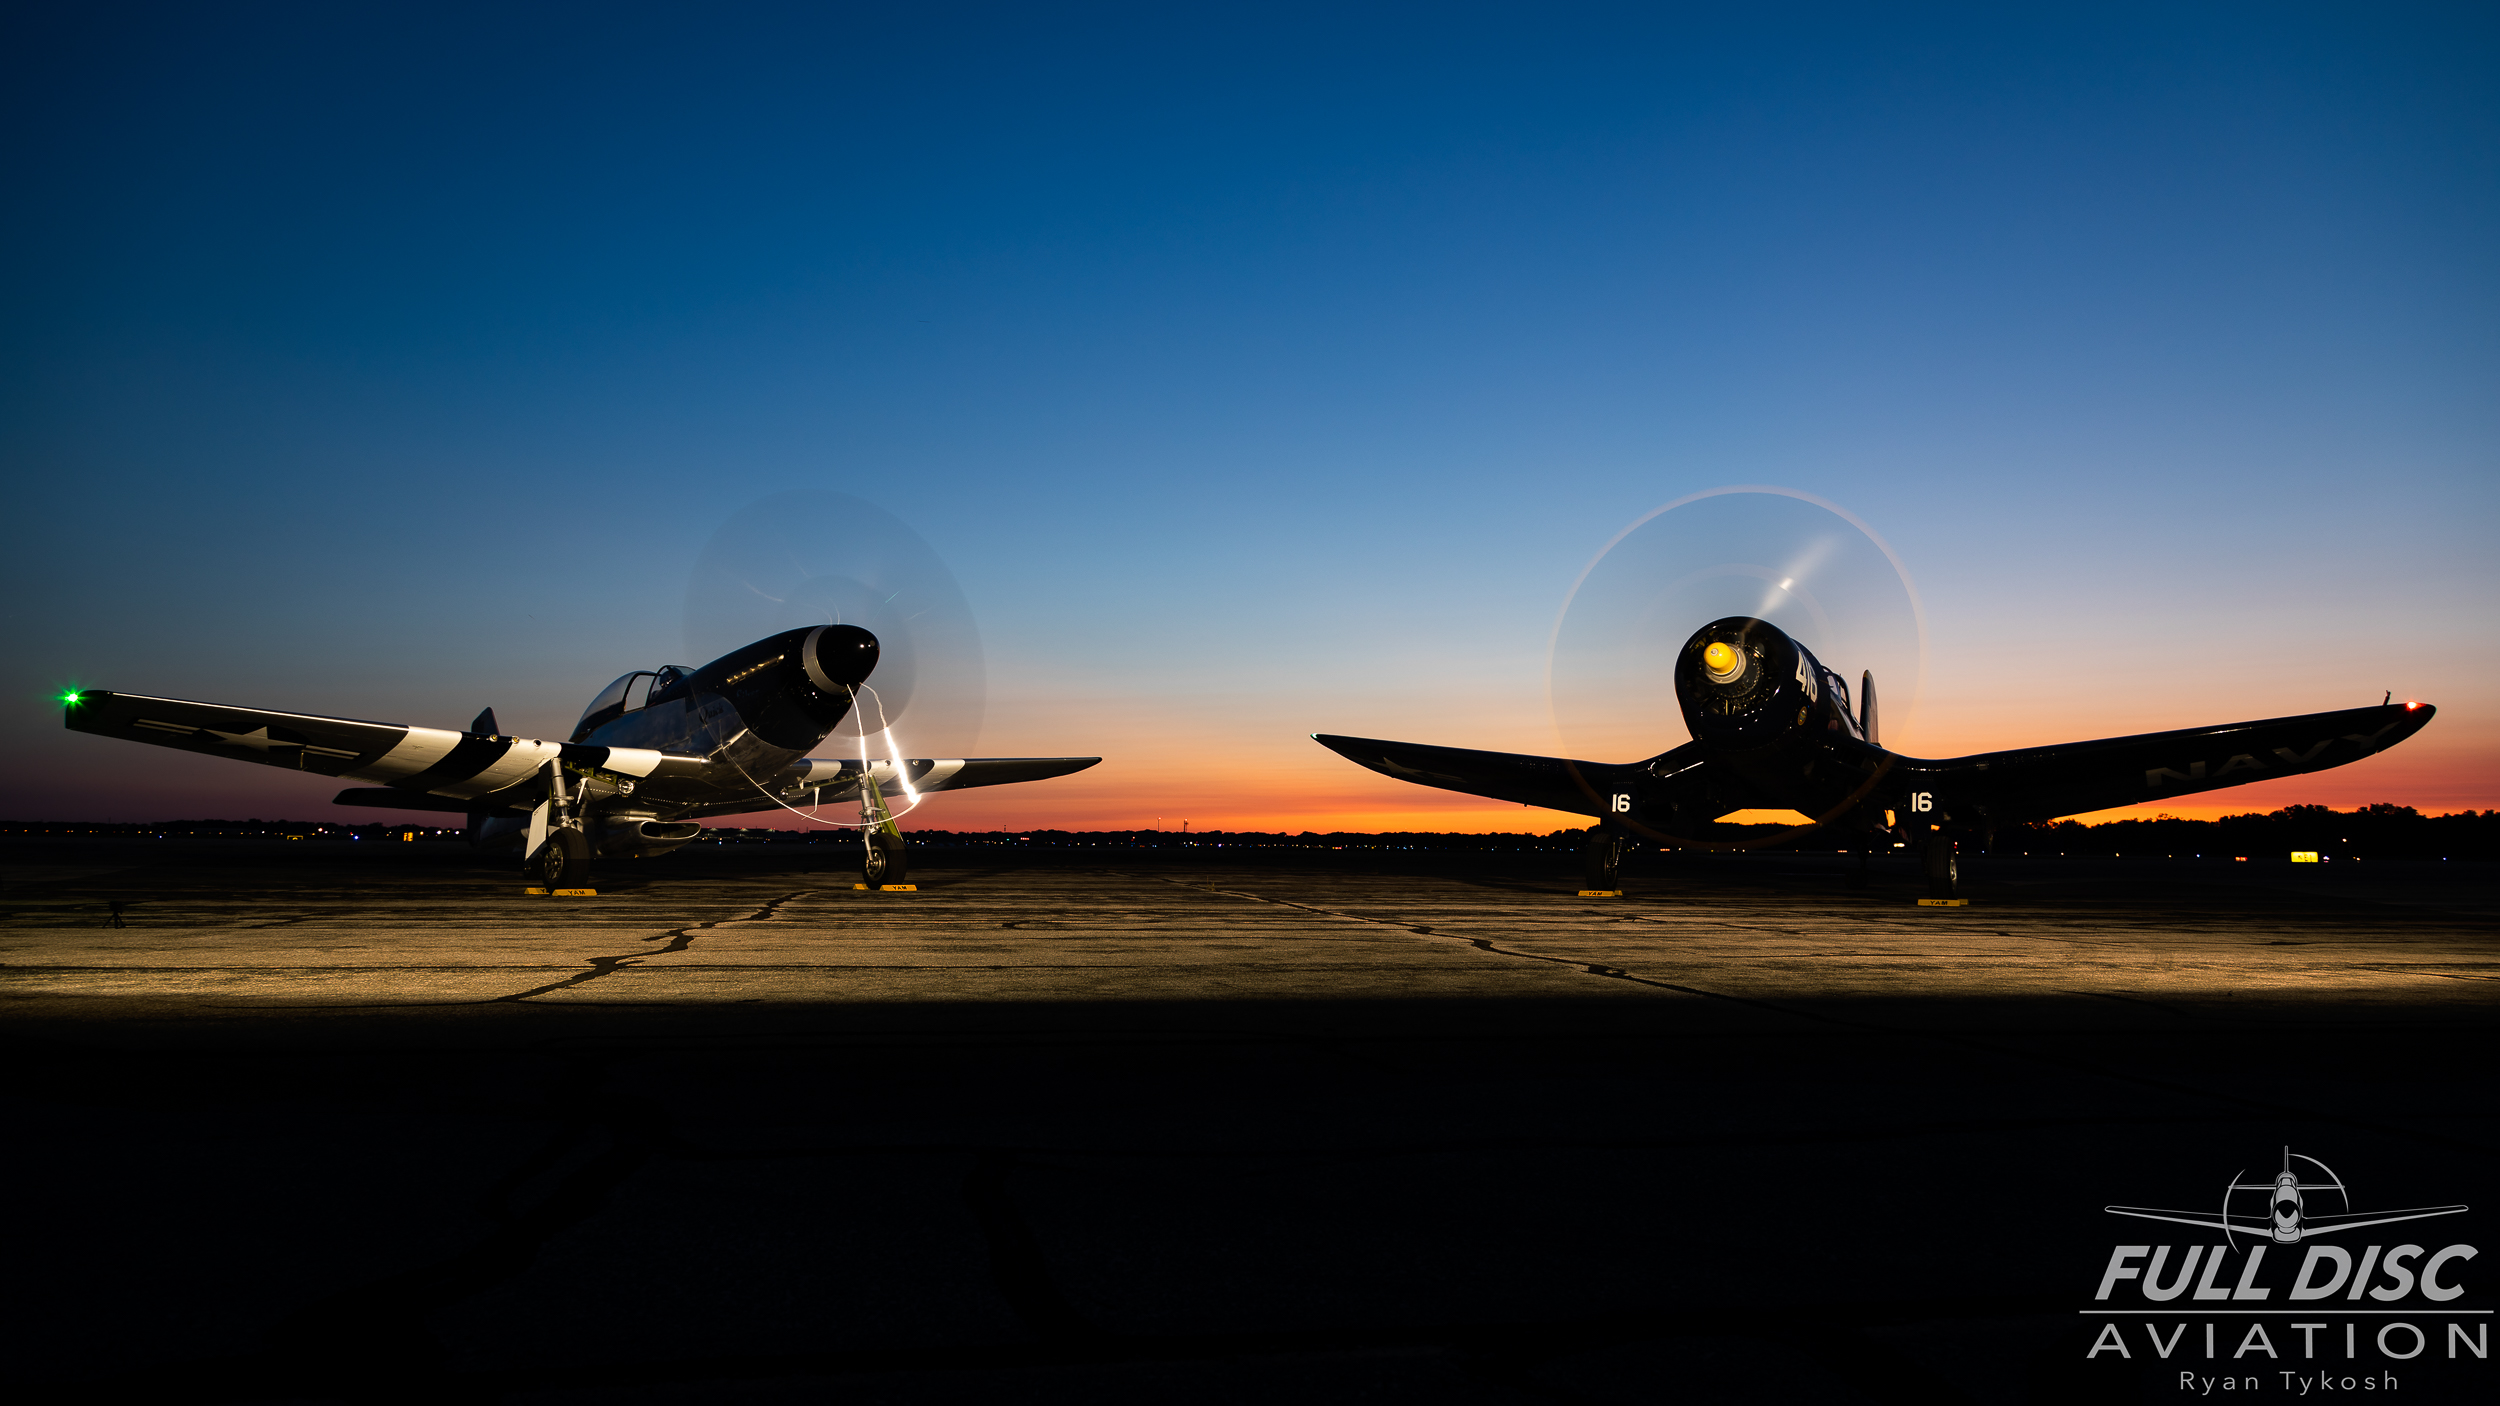 ClassOf45_FullDiscAviation_RyanTykosh_August 01, 2019_04.jpg